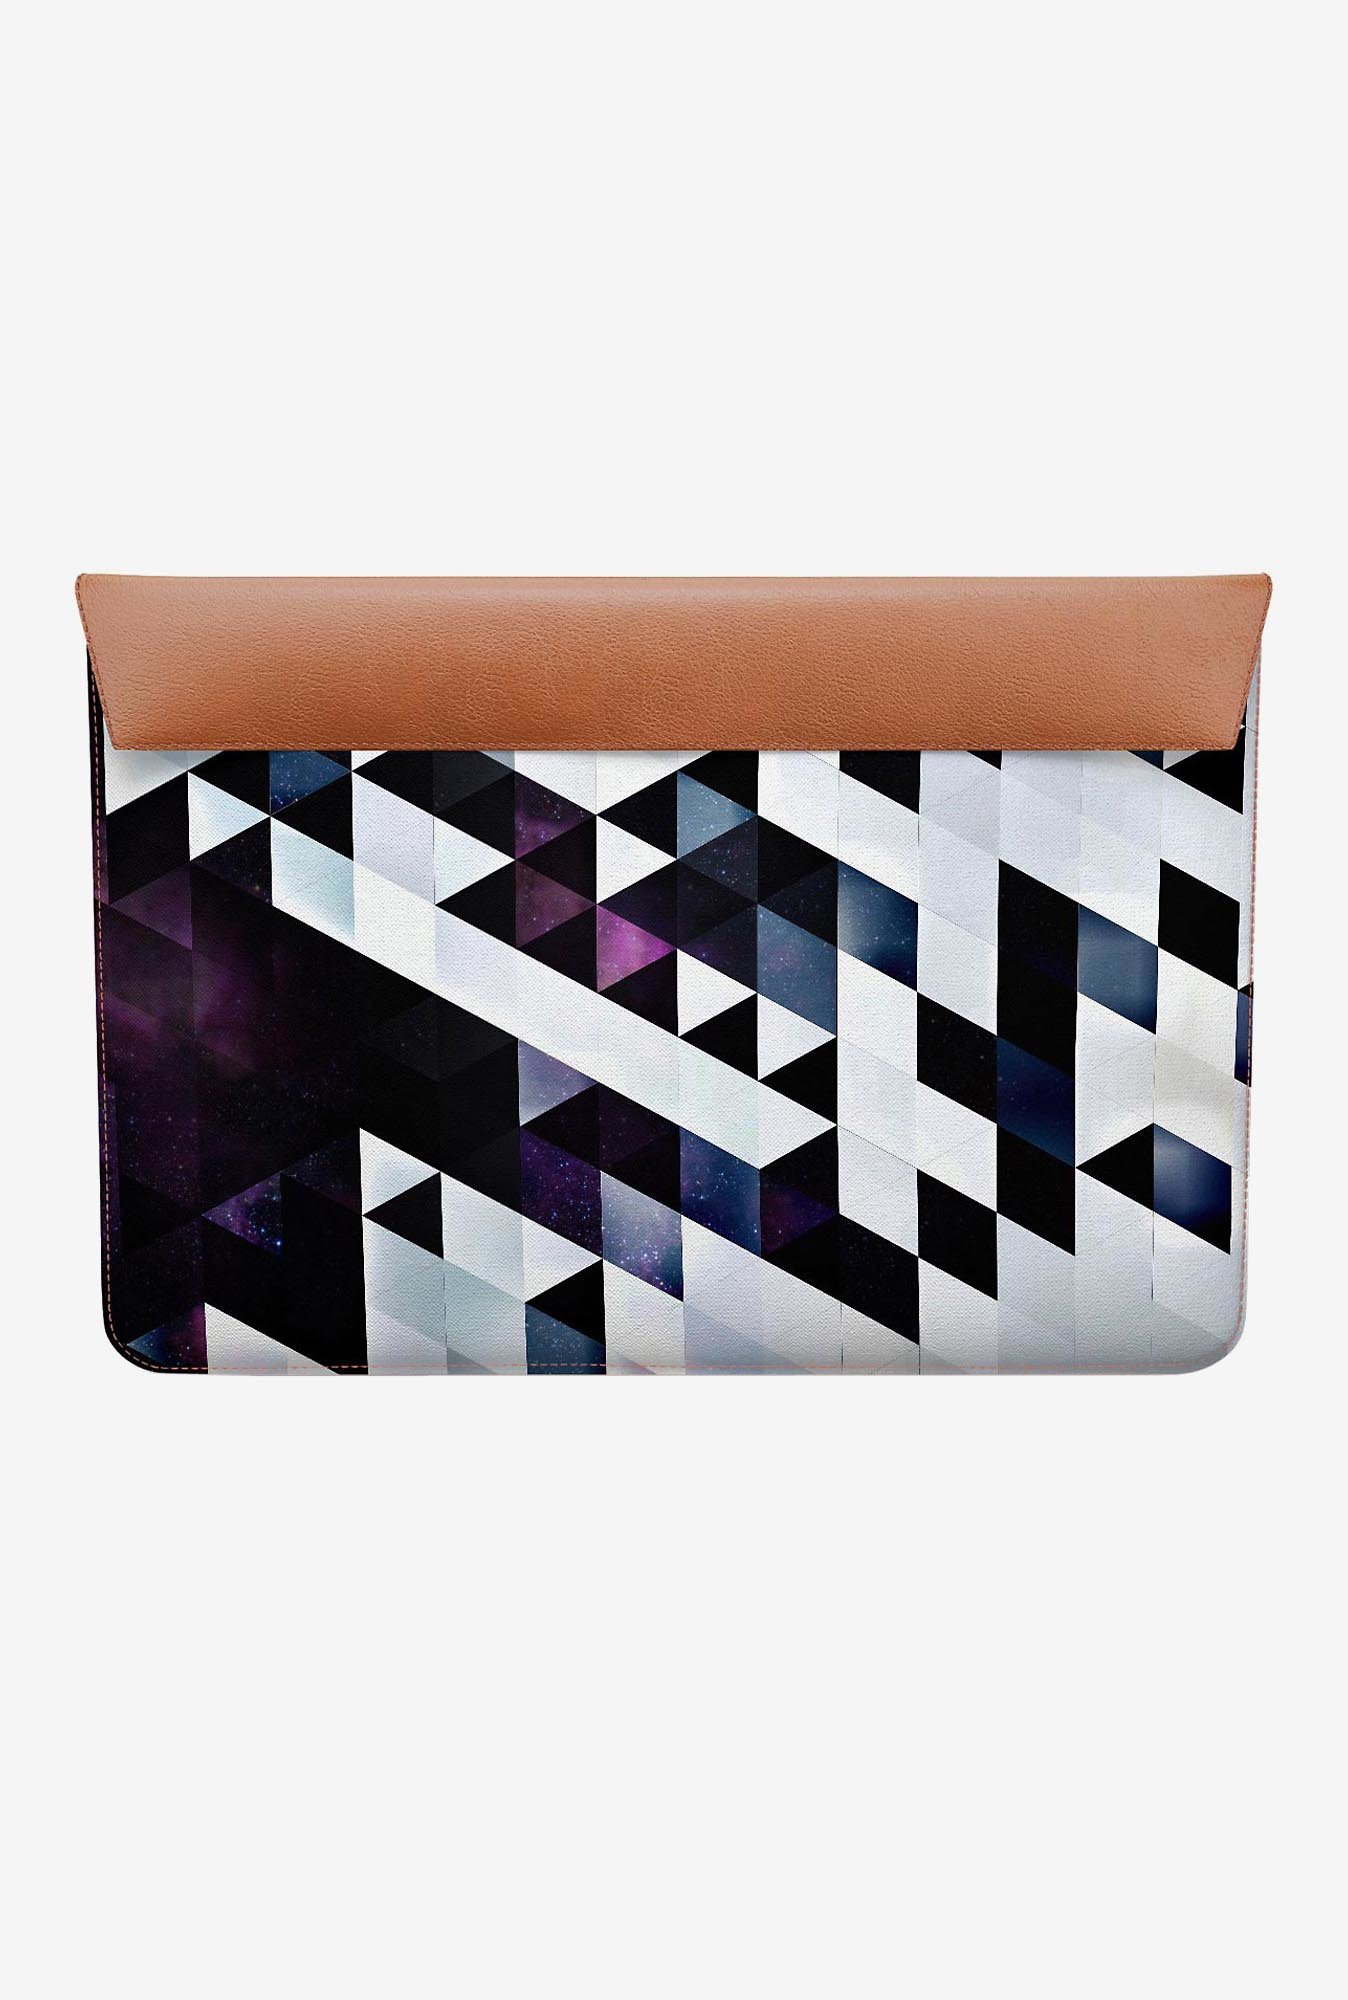 "DailyObjects Modyrn Lykquyr Macbook Air 11"" Envelope Sleeve"